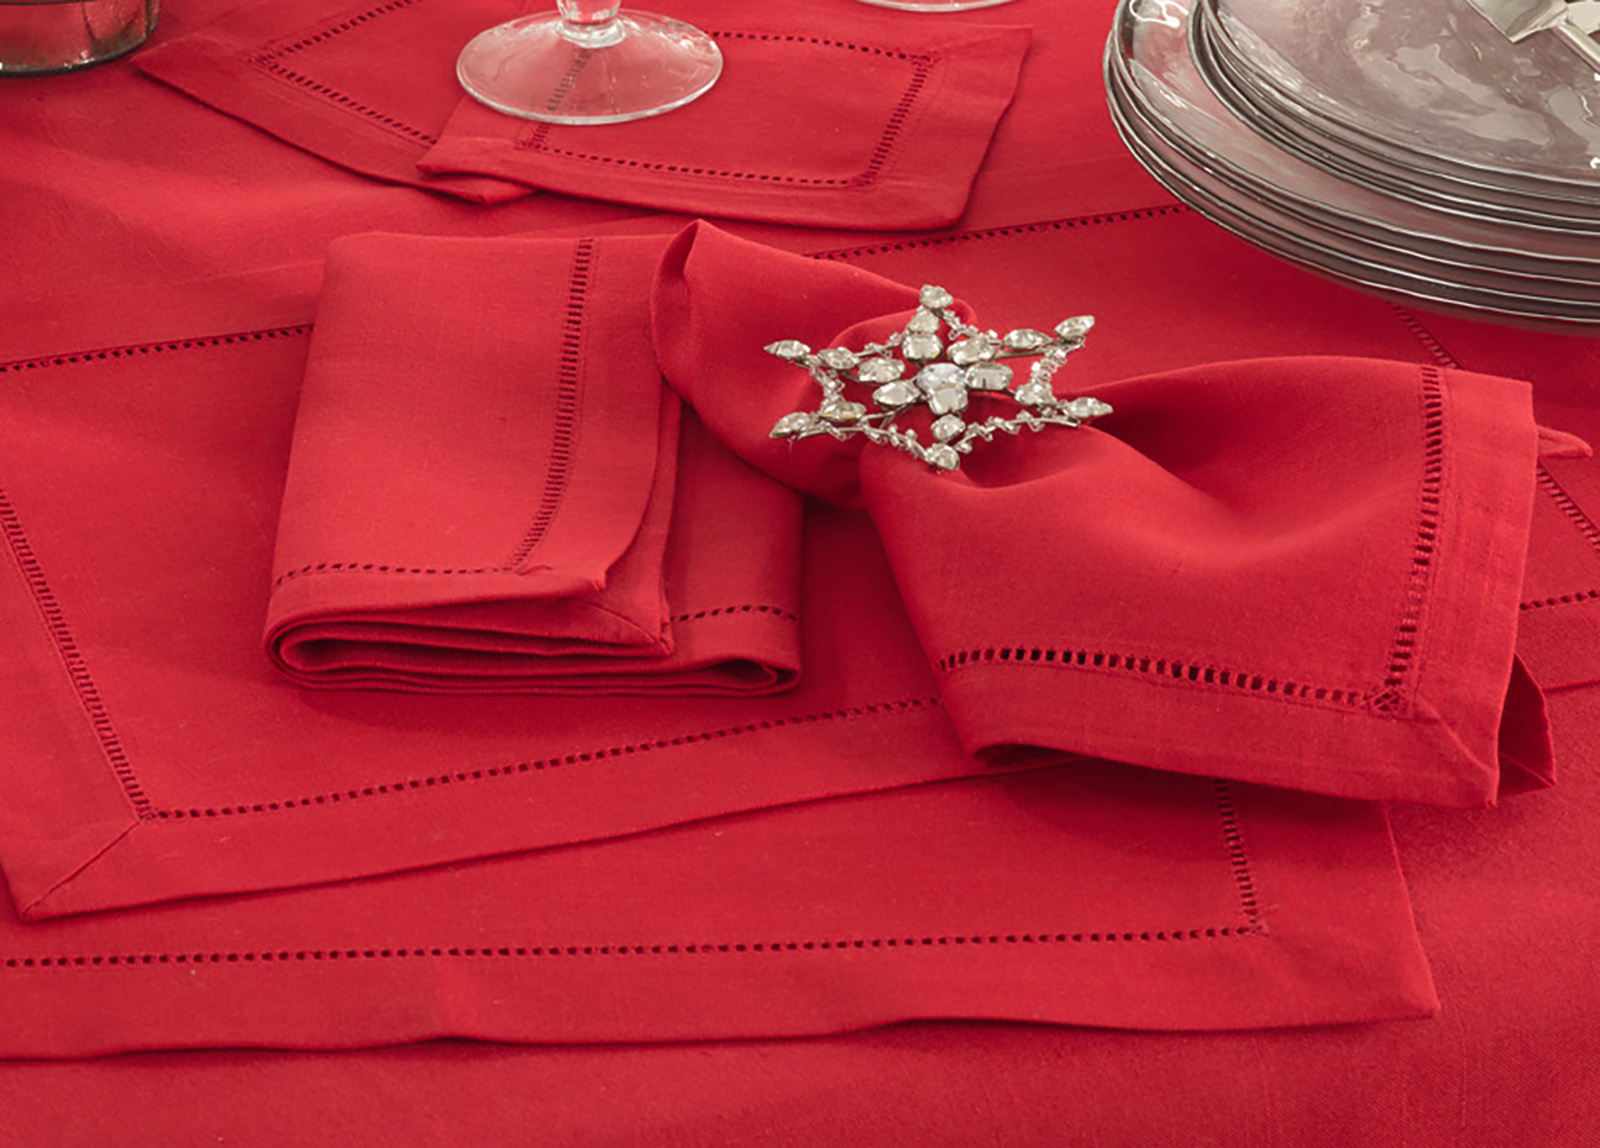 Hemstitched Dinner Napkin RED